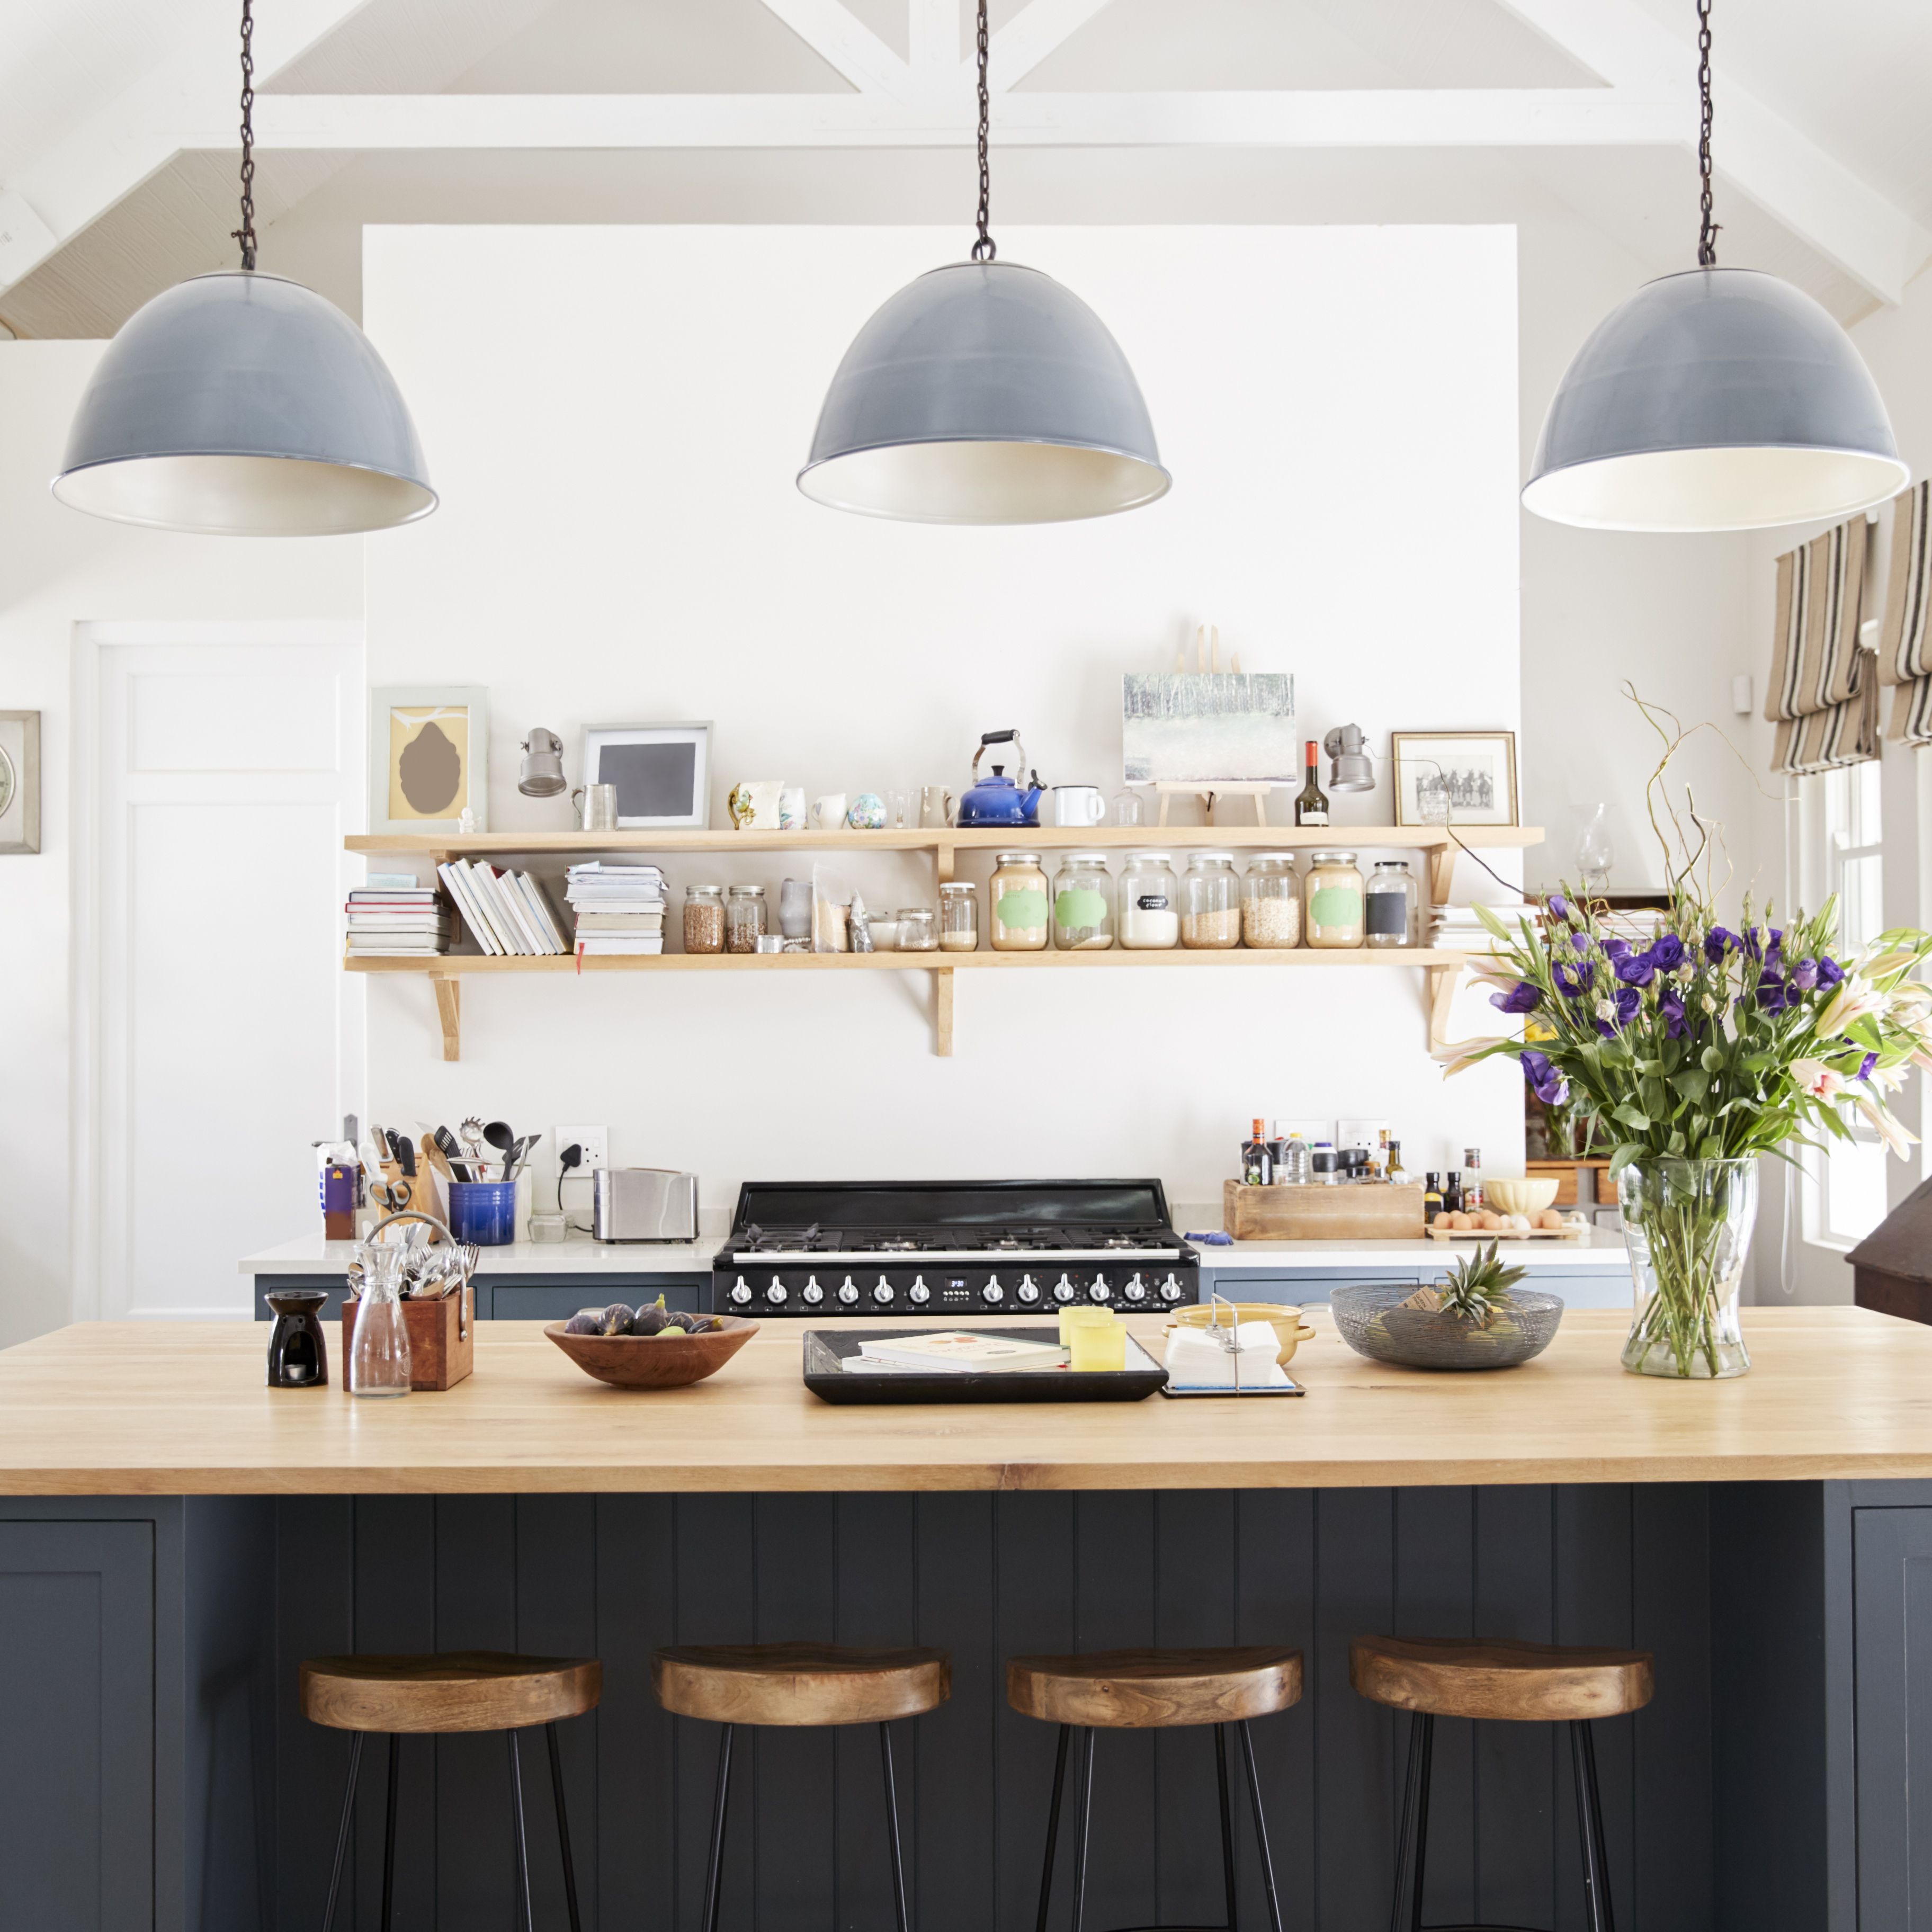 Make a Statement With the Best Paint for Kitchen Cabinets